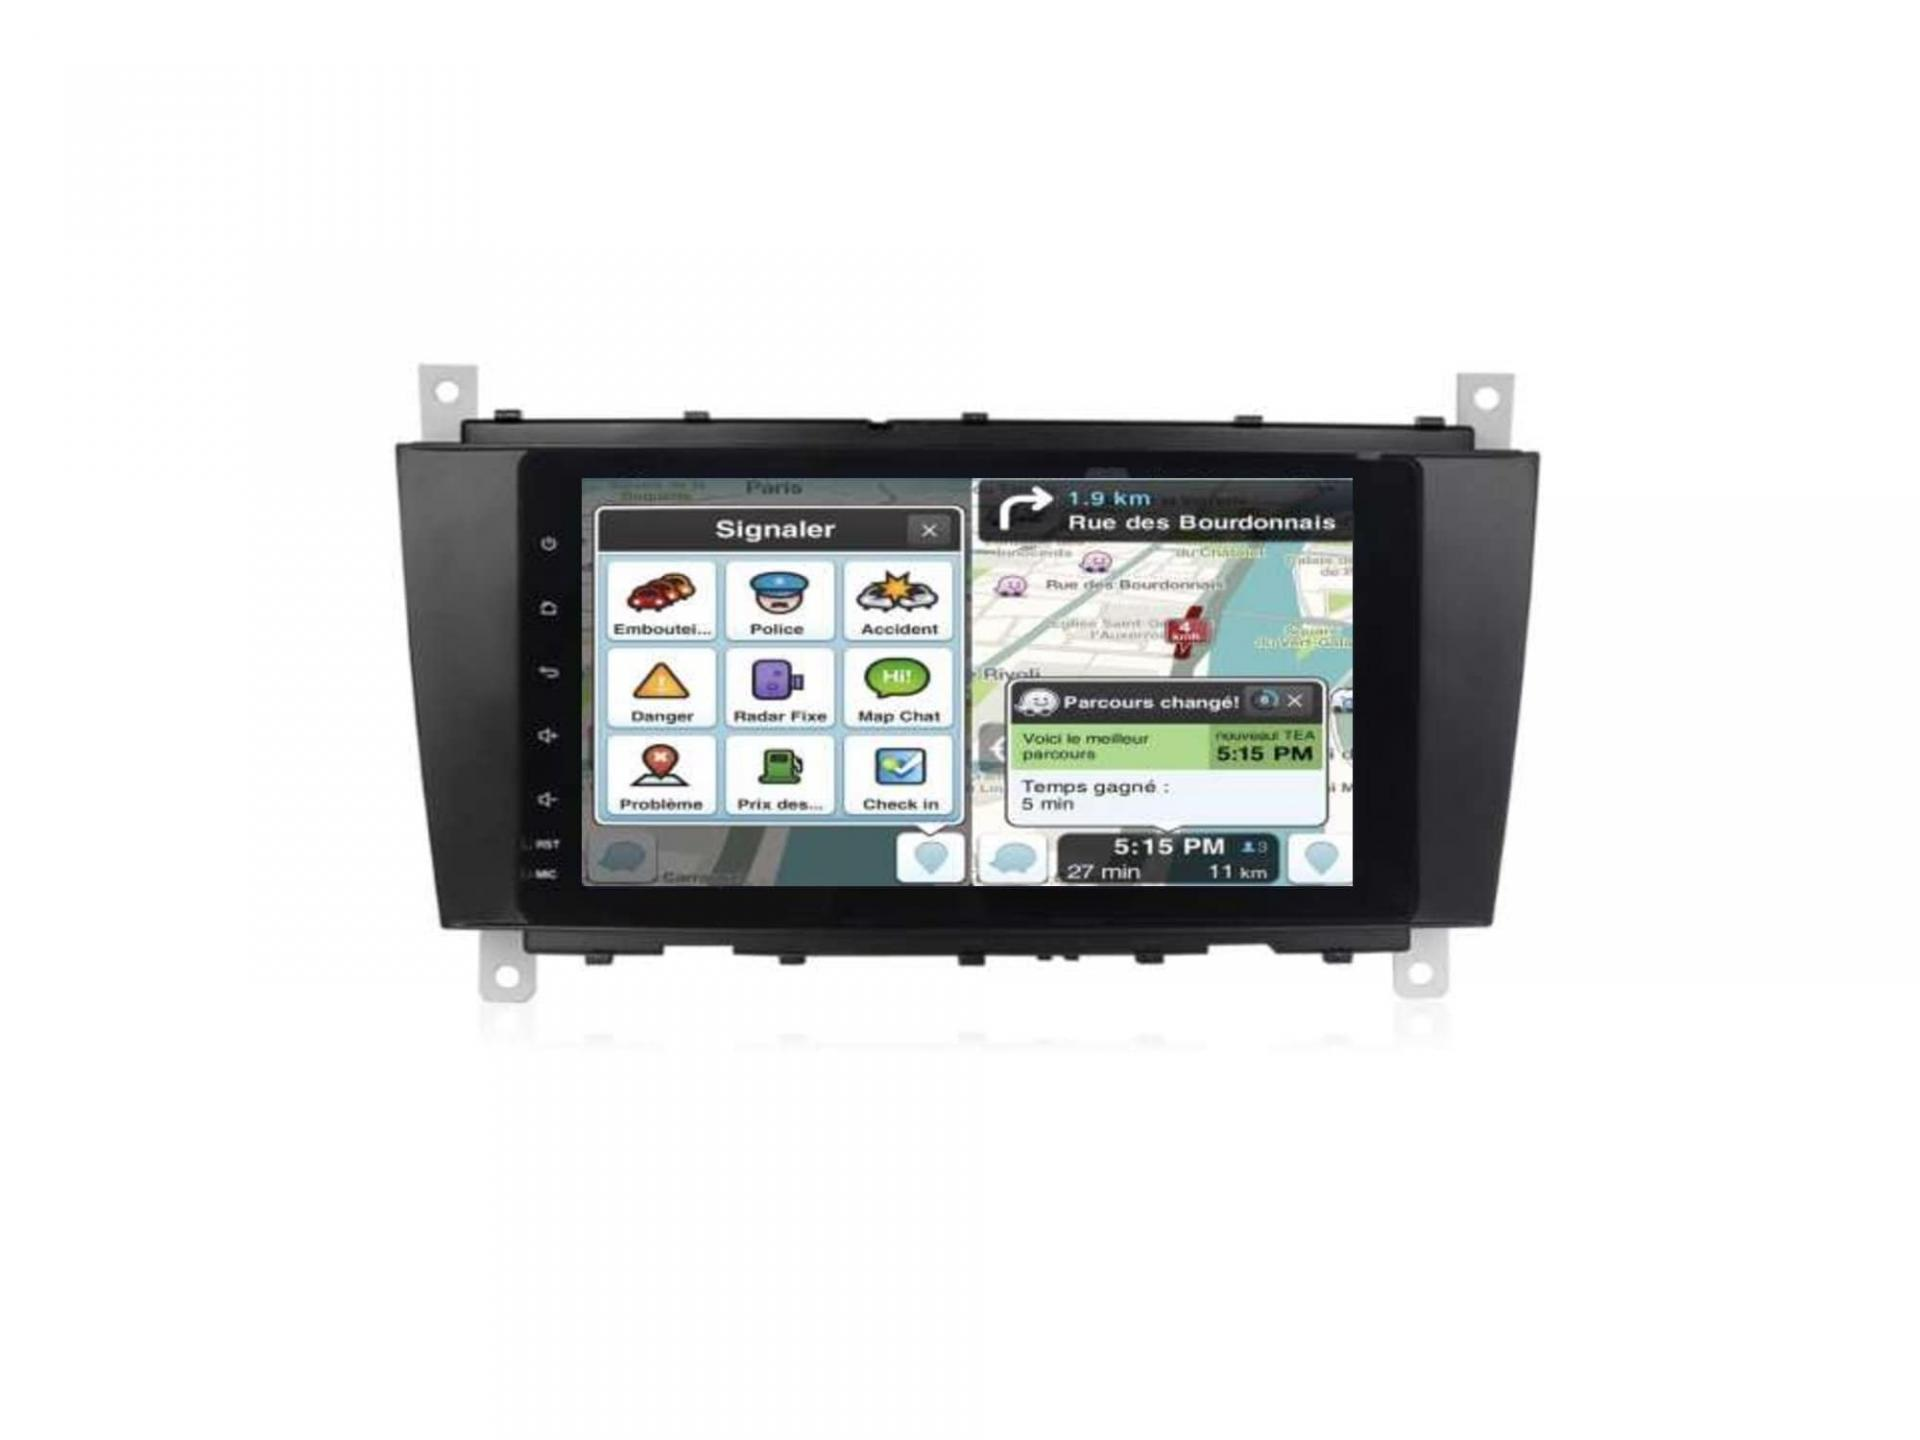 Autoradio gps bluetooth carplay android auto mercedes classe c w203 phase 1 classe g clk vito viano 1